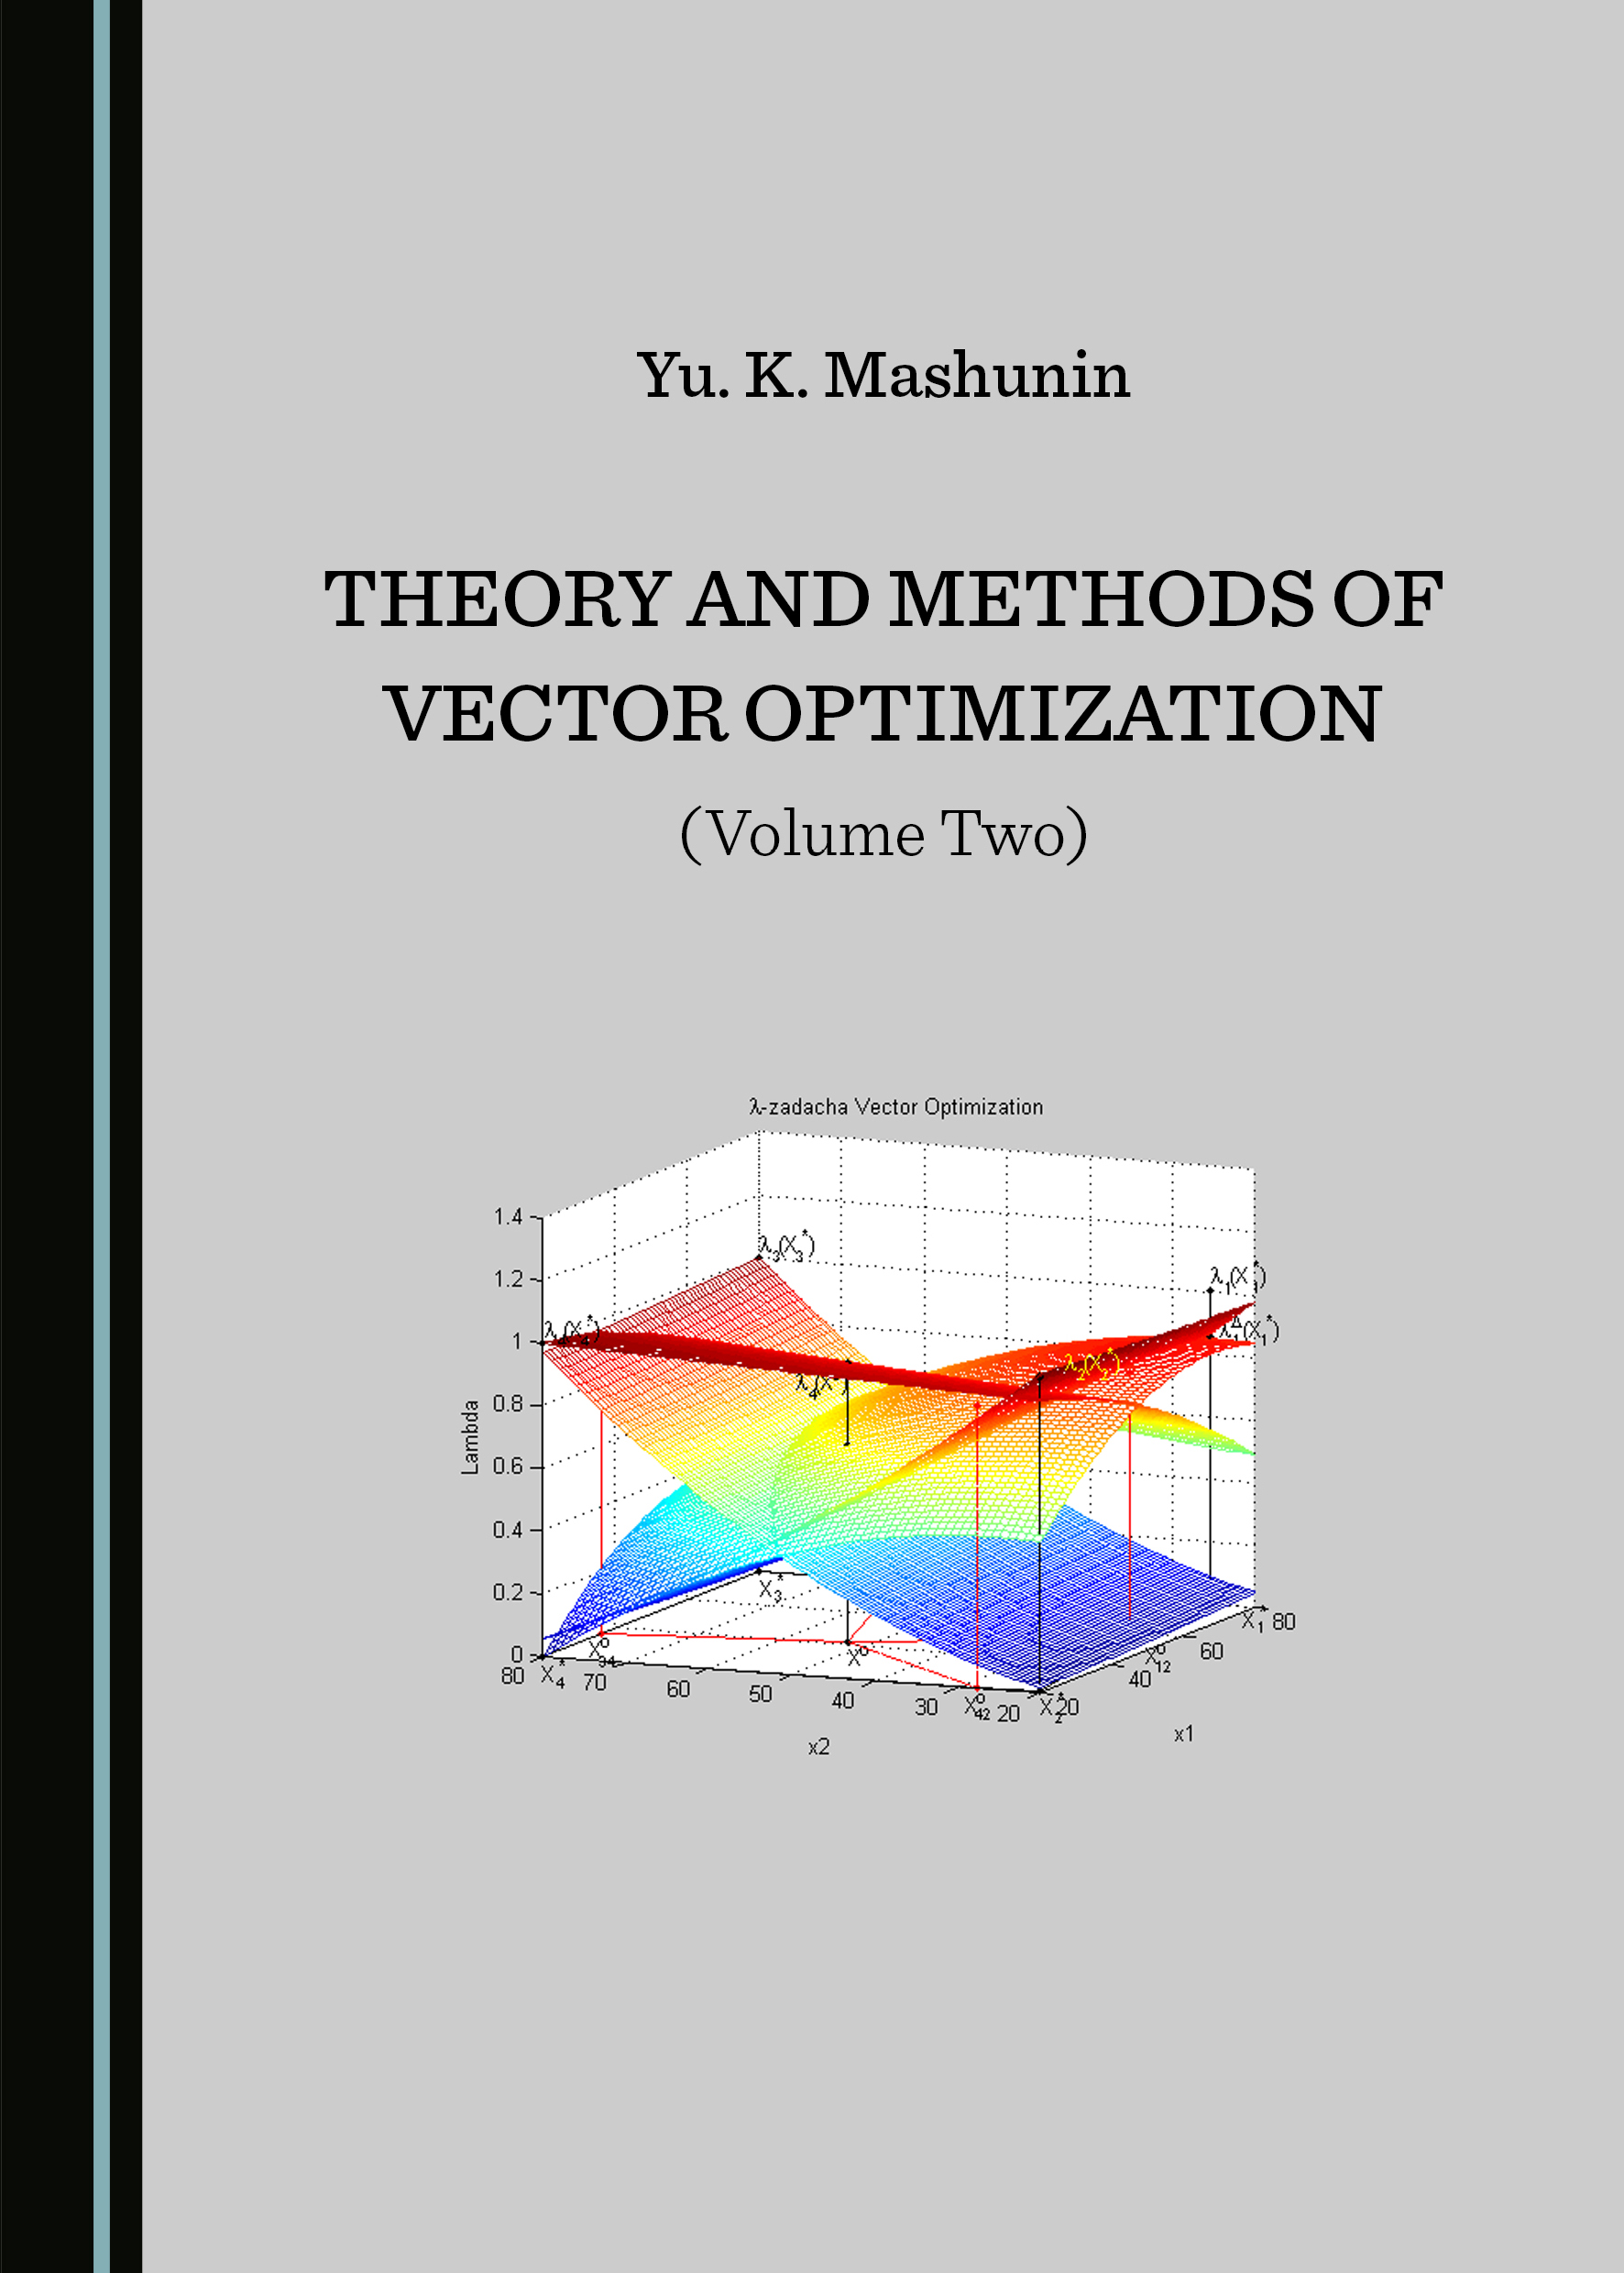 Theory and Methods of Vector Optimization (Volume Two)